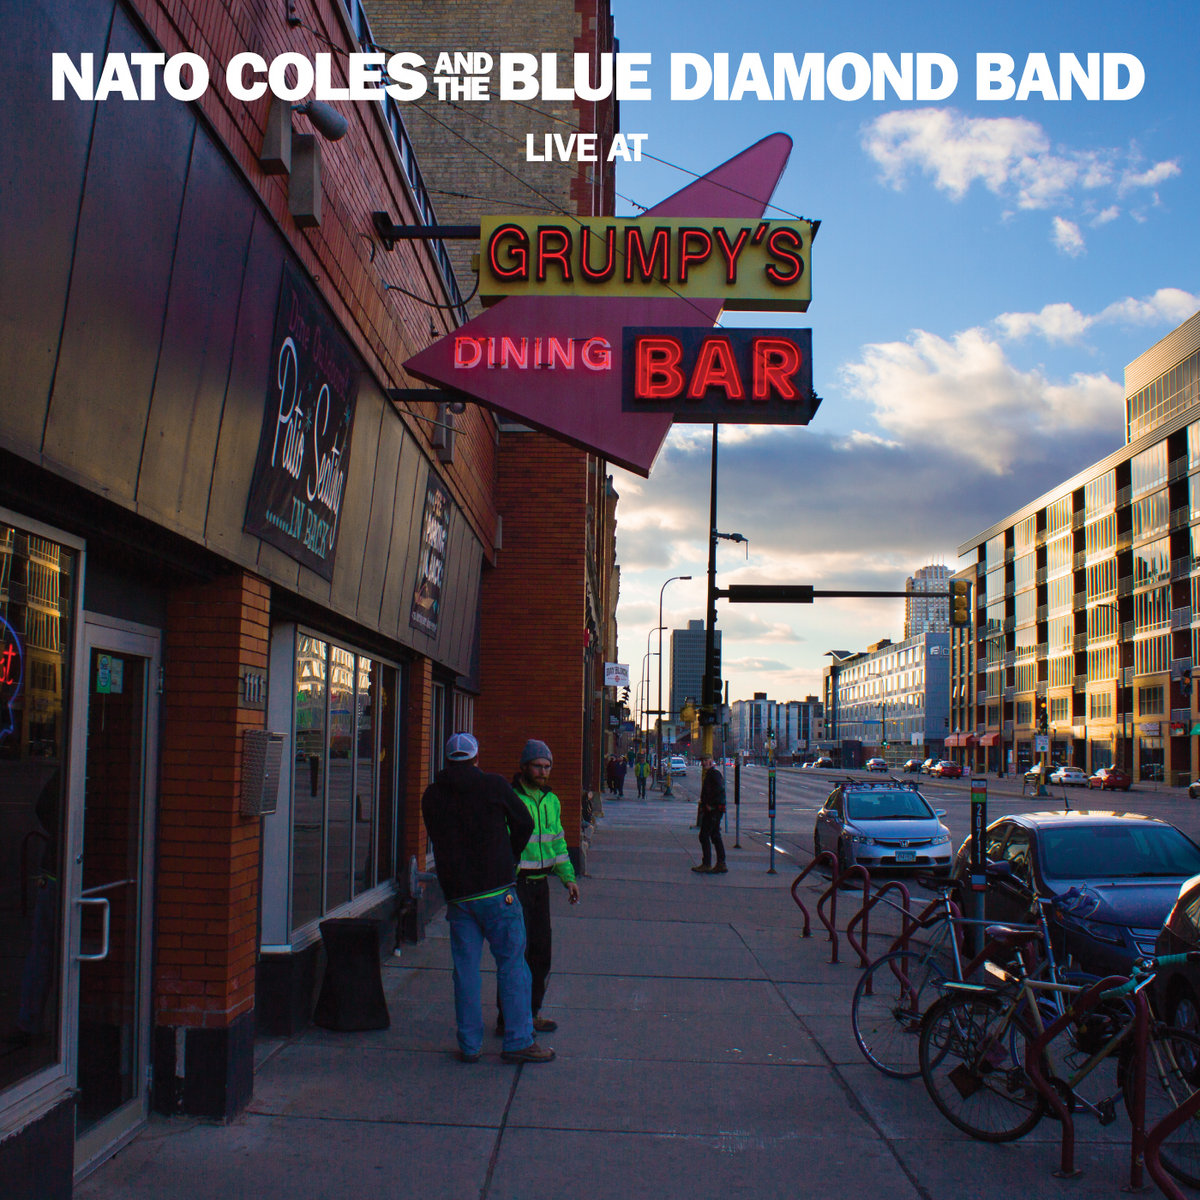 by Nato Coles and the Blue Diamond Band